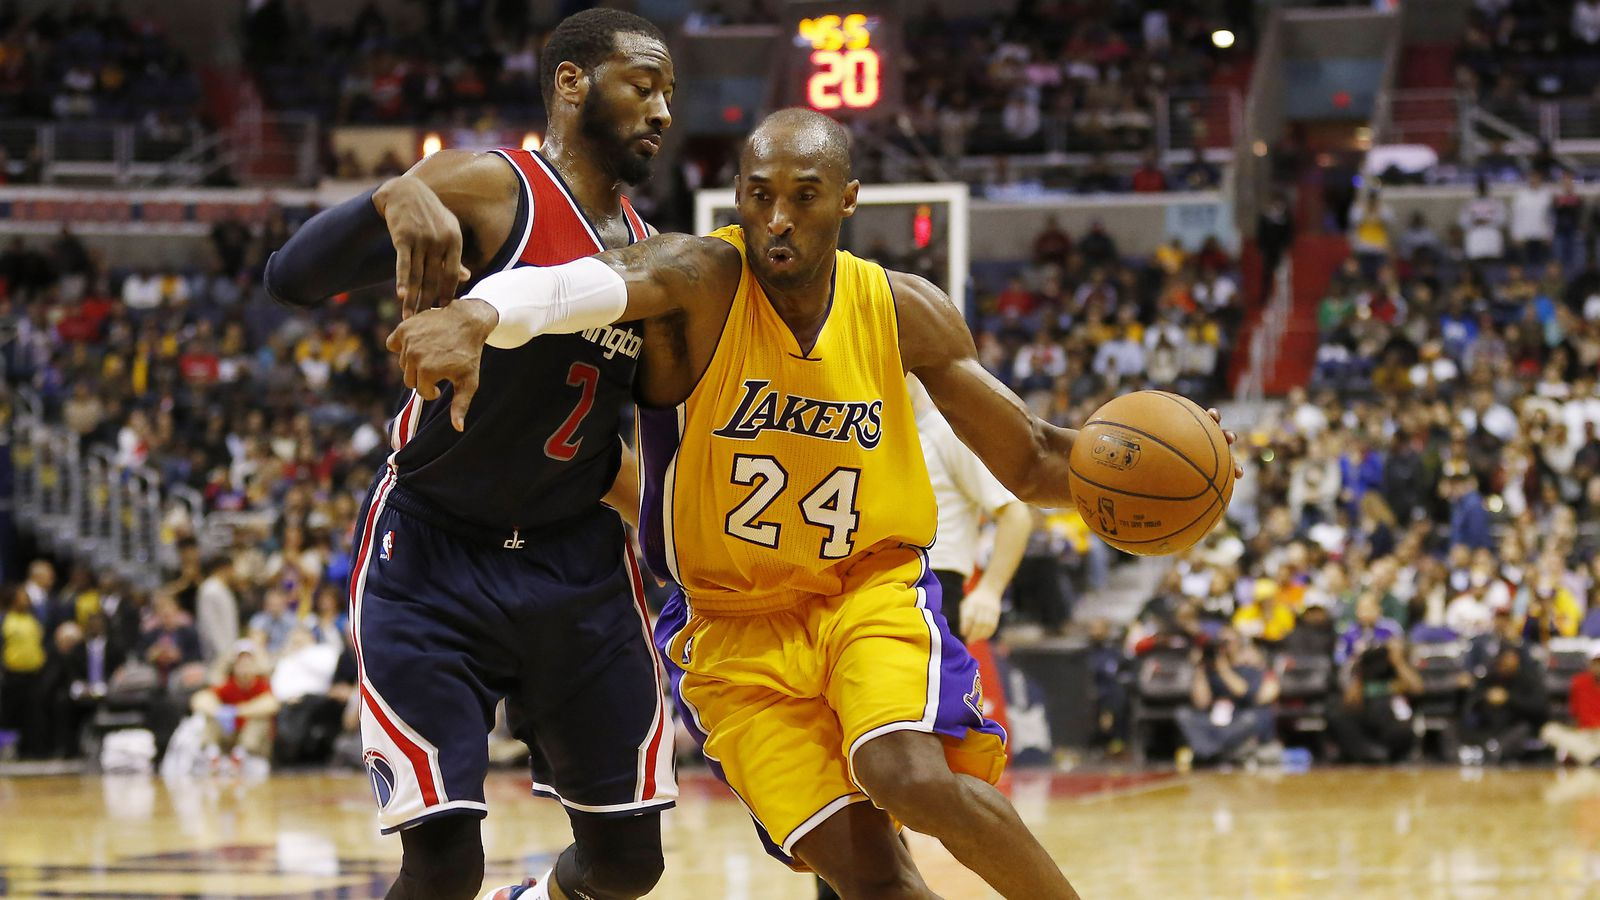 Lakers vs. Wizards Preview: Lakers try to find life after ...